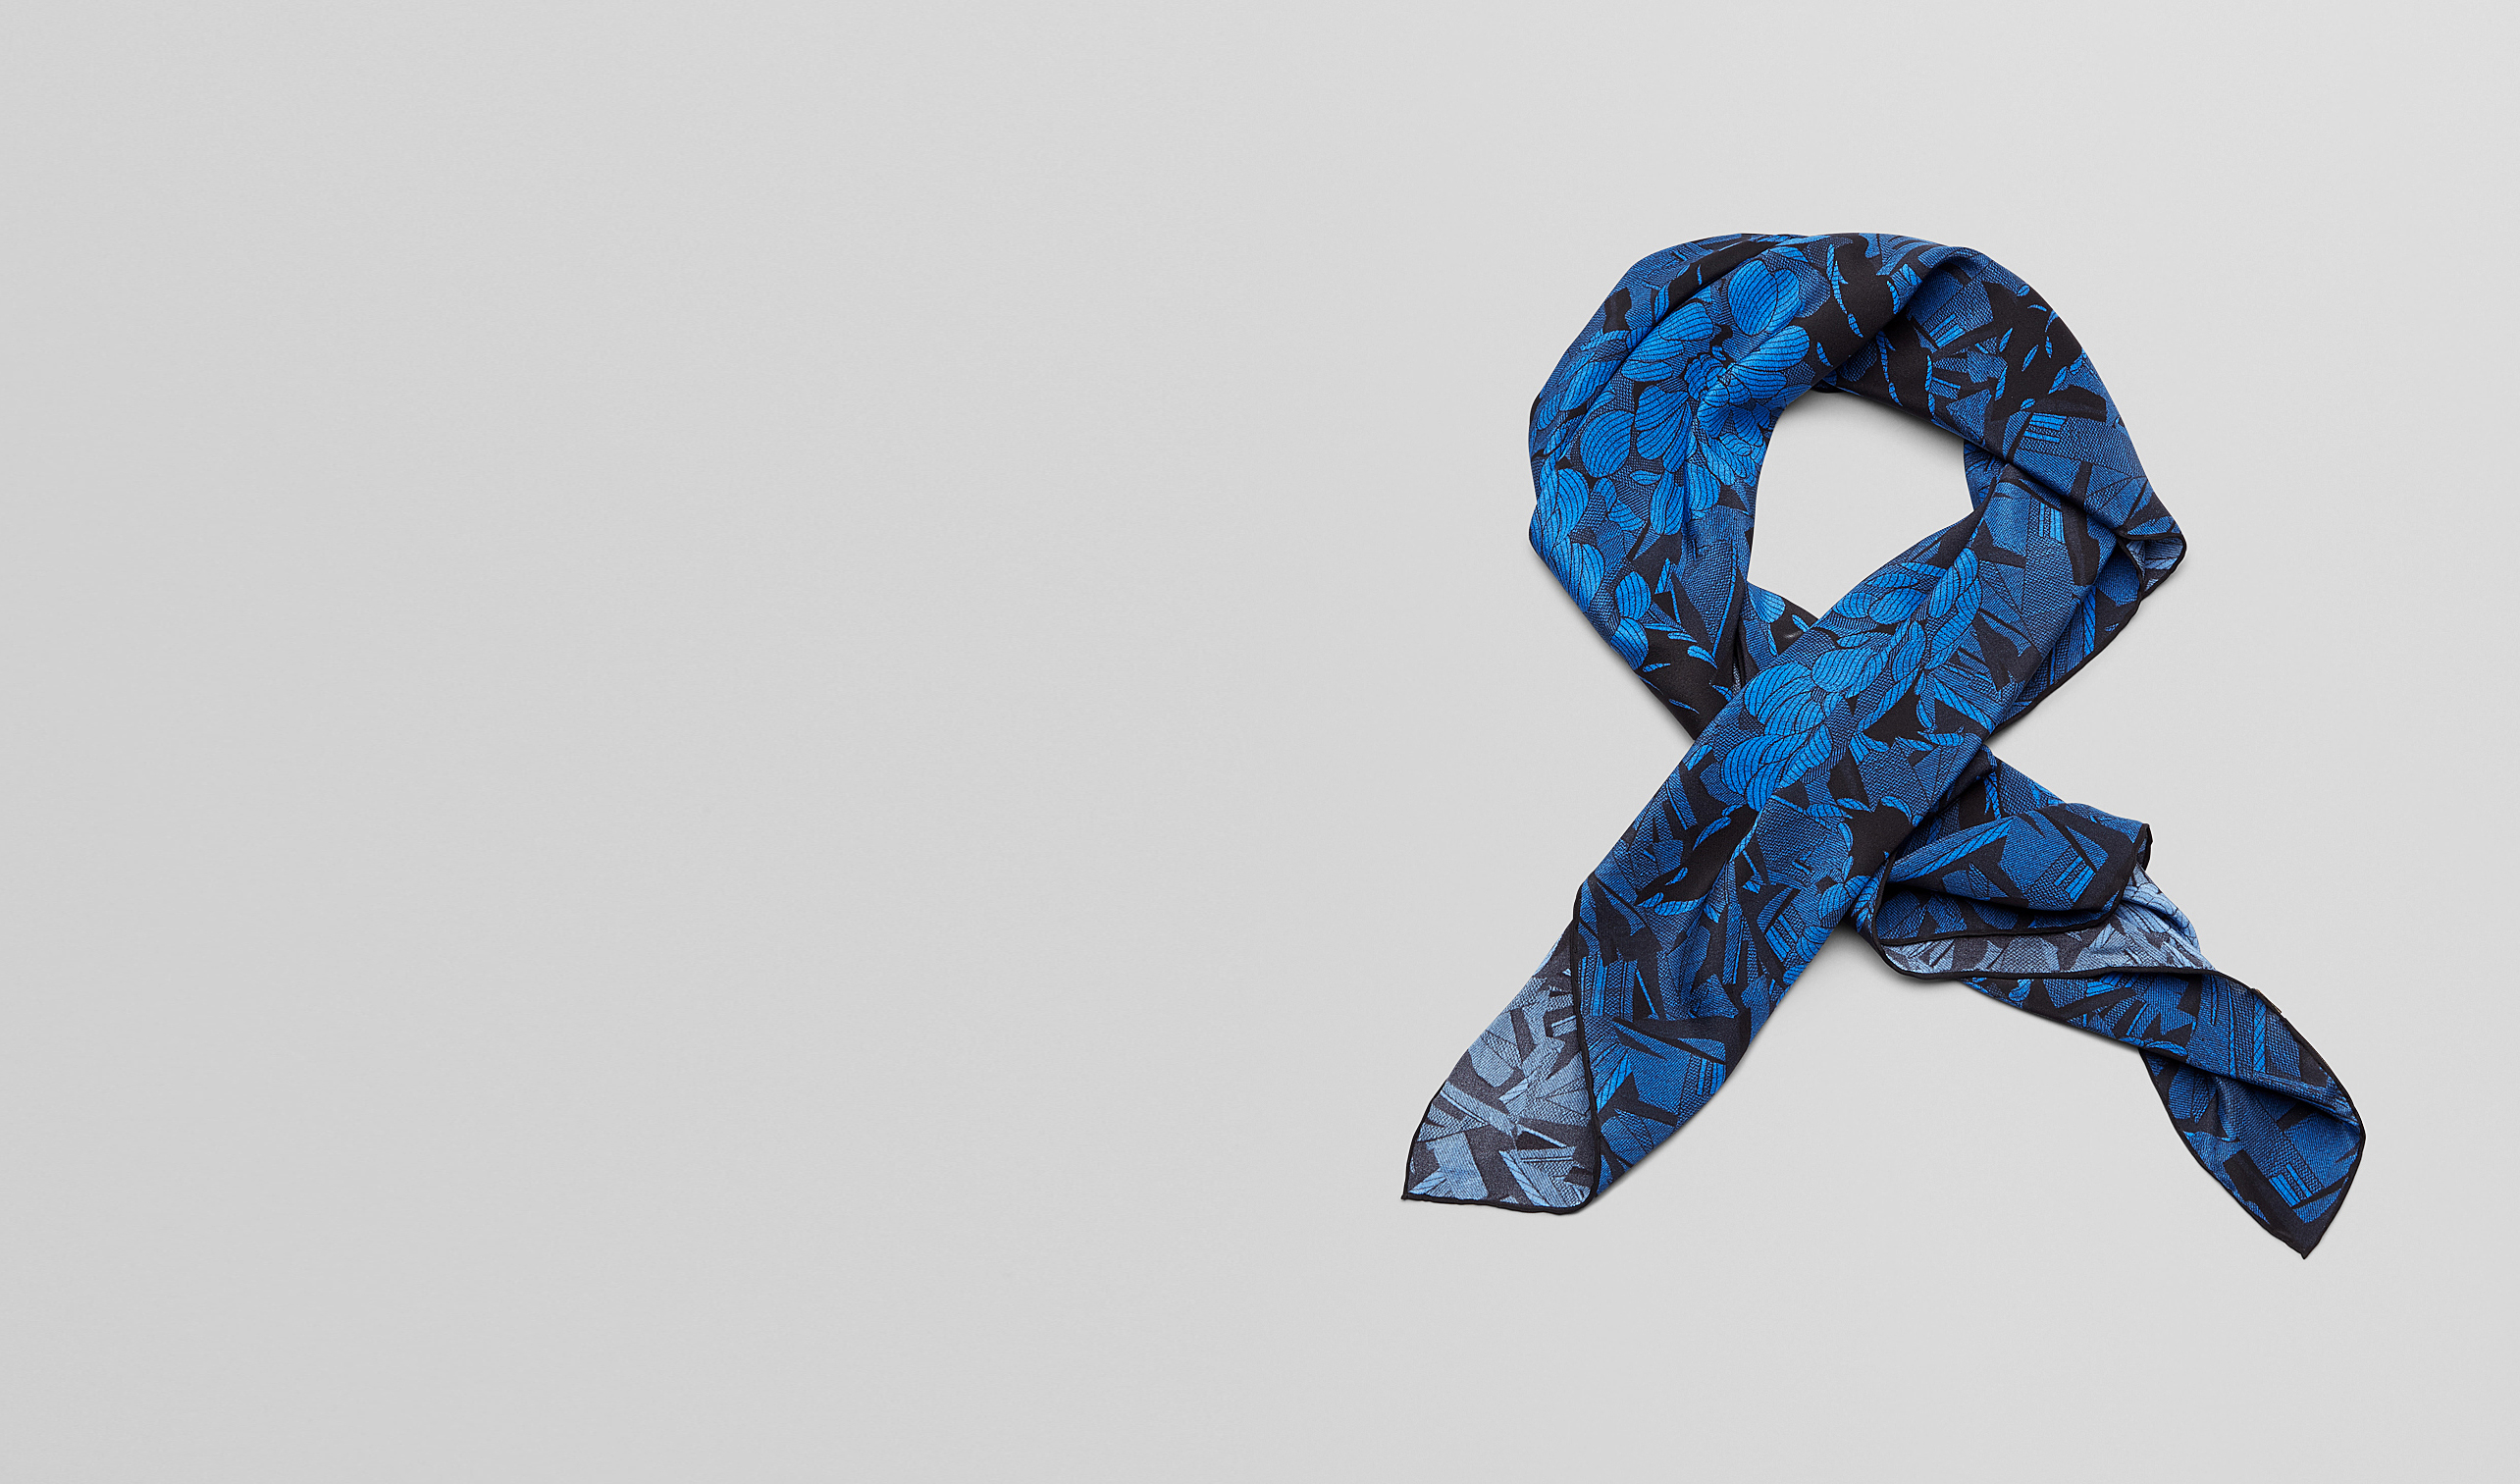 BOTTEGA VENETA Scarf or other D BLACK BLUE  SILK FOULARD pl